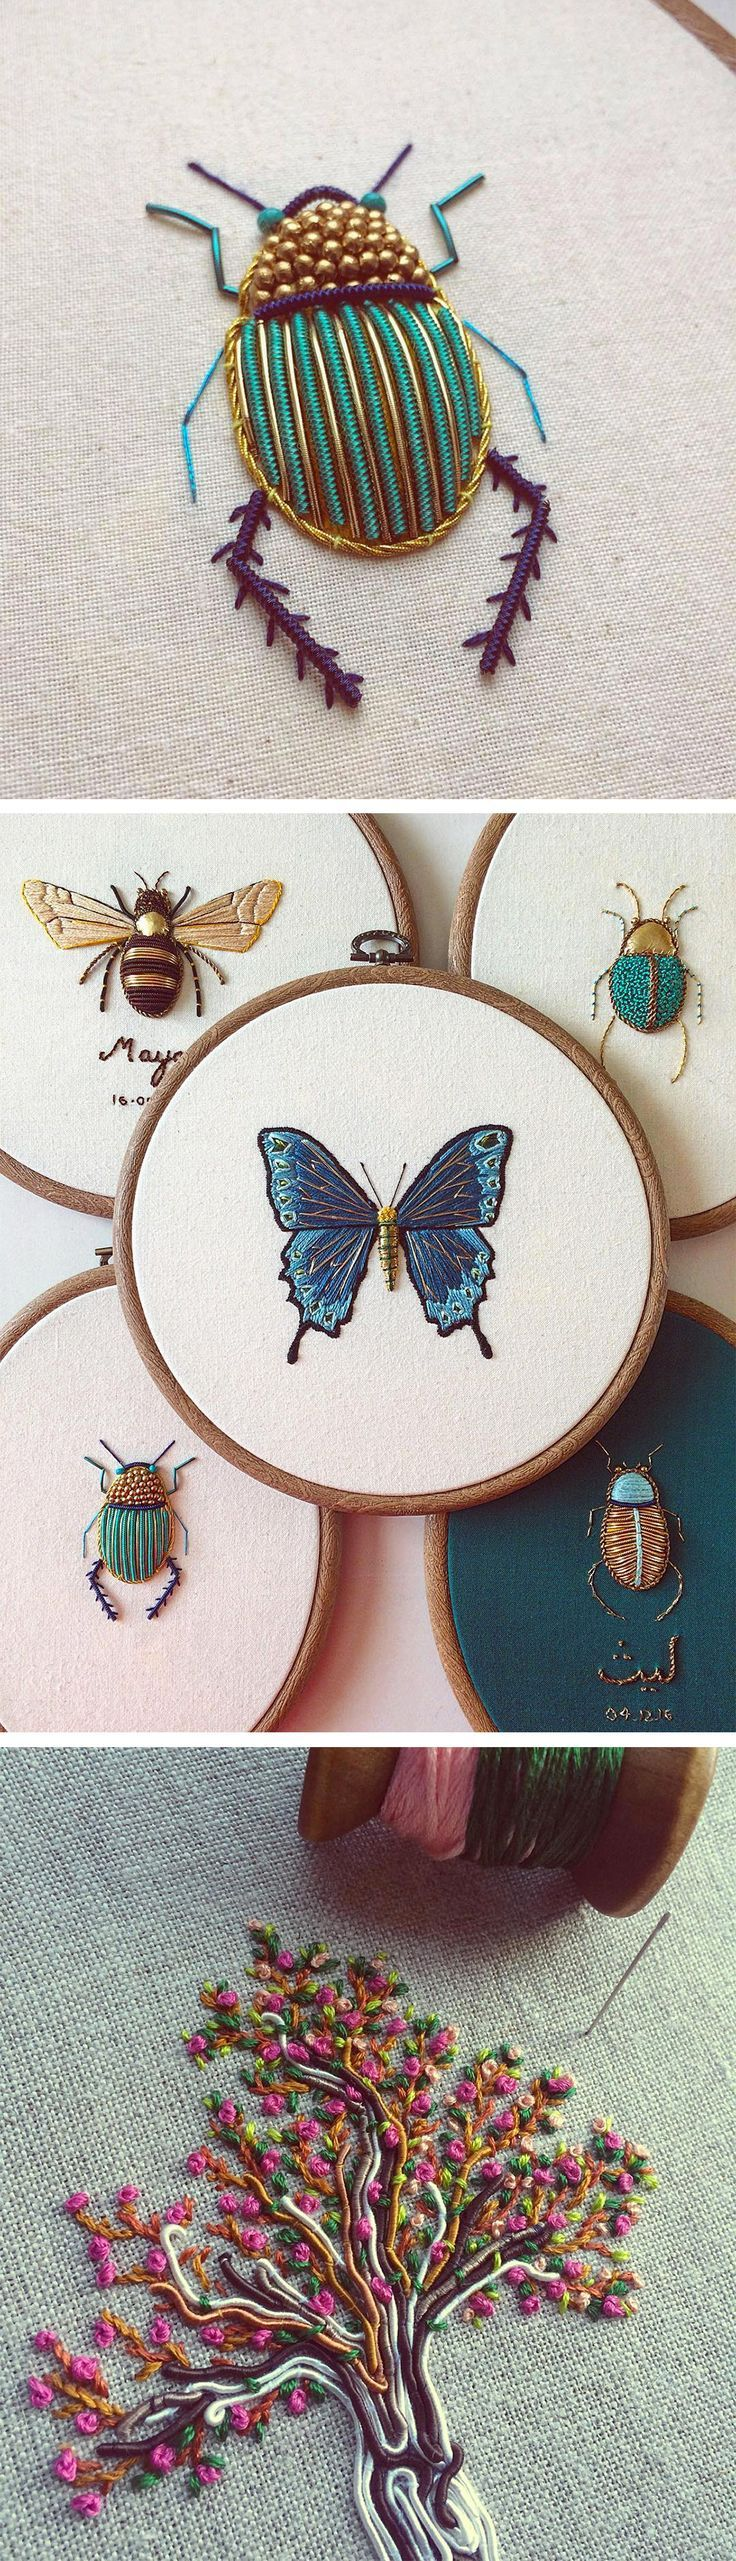 Ornate Insect Embroideries by Humayrah Bint Altaf Incorporate Antique Materials and Metallic Beads #embroidery #cbloggers #lbloggers #beading #seedbeads